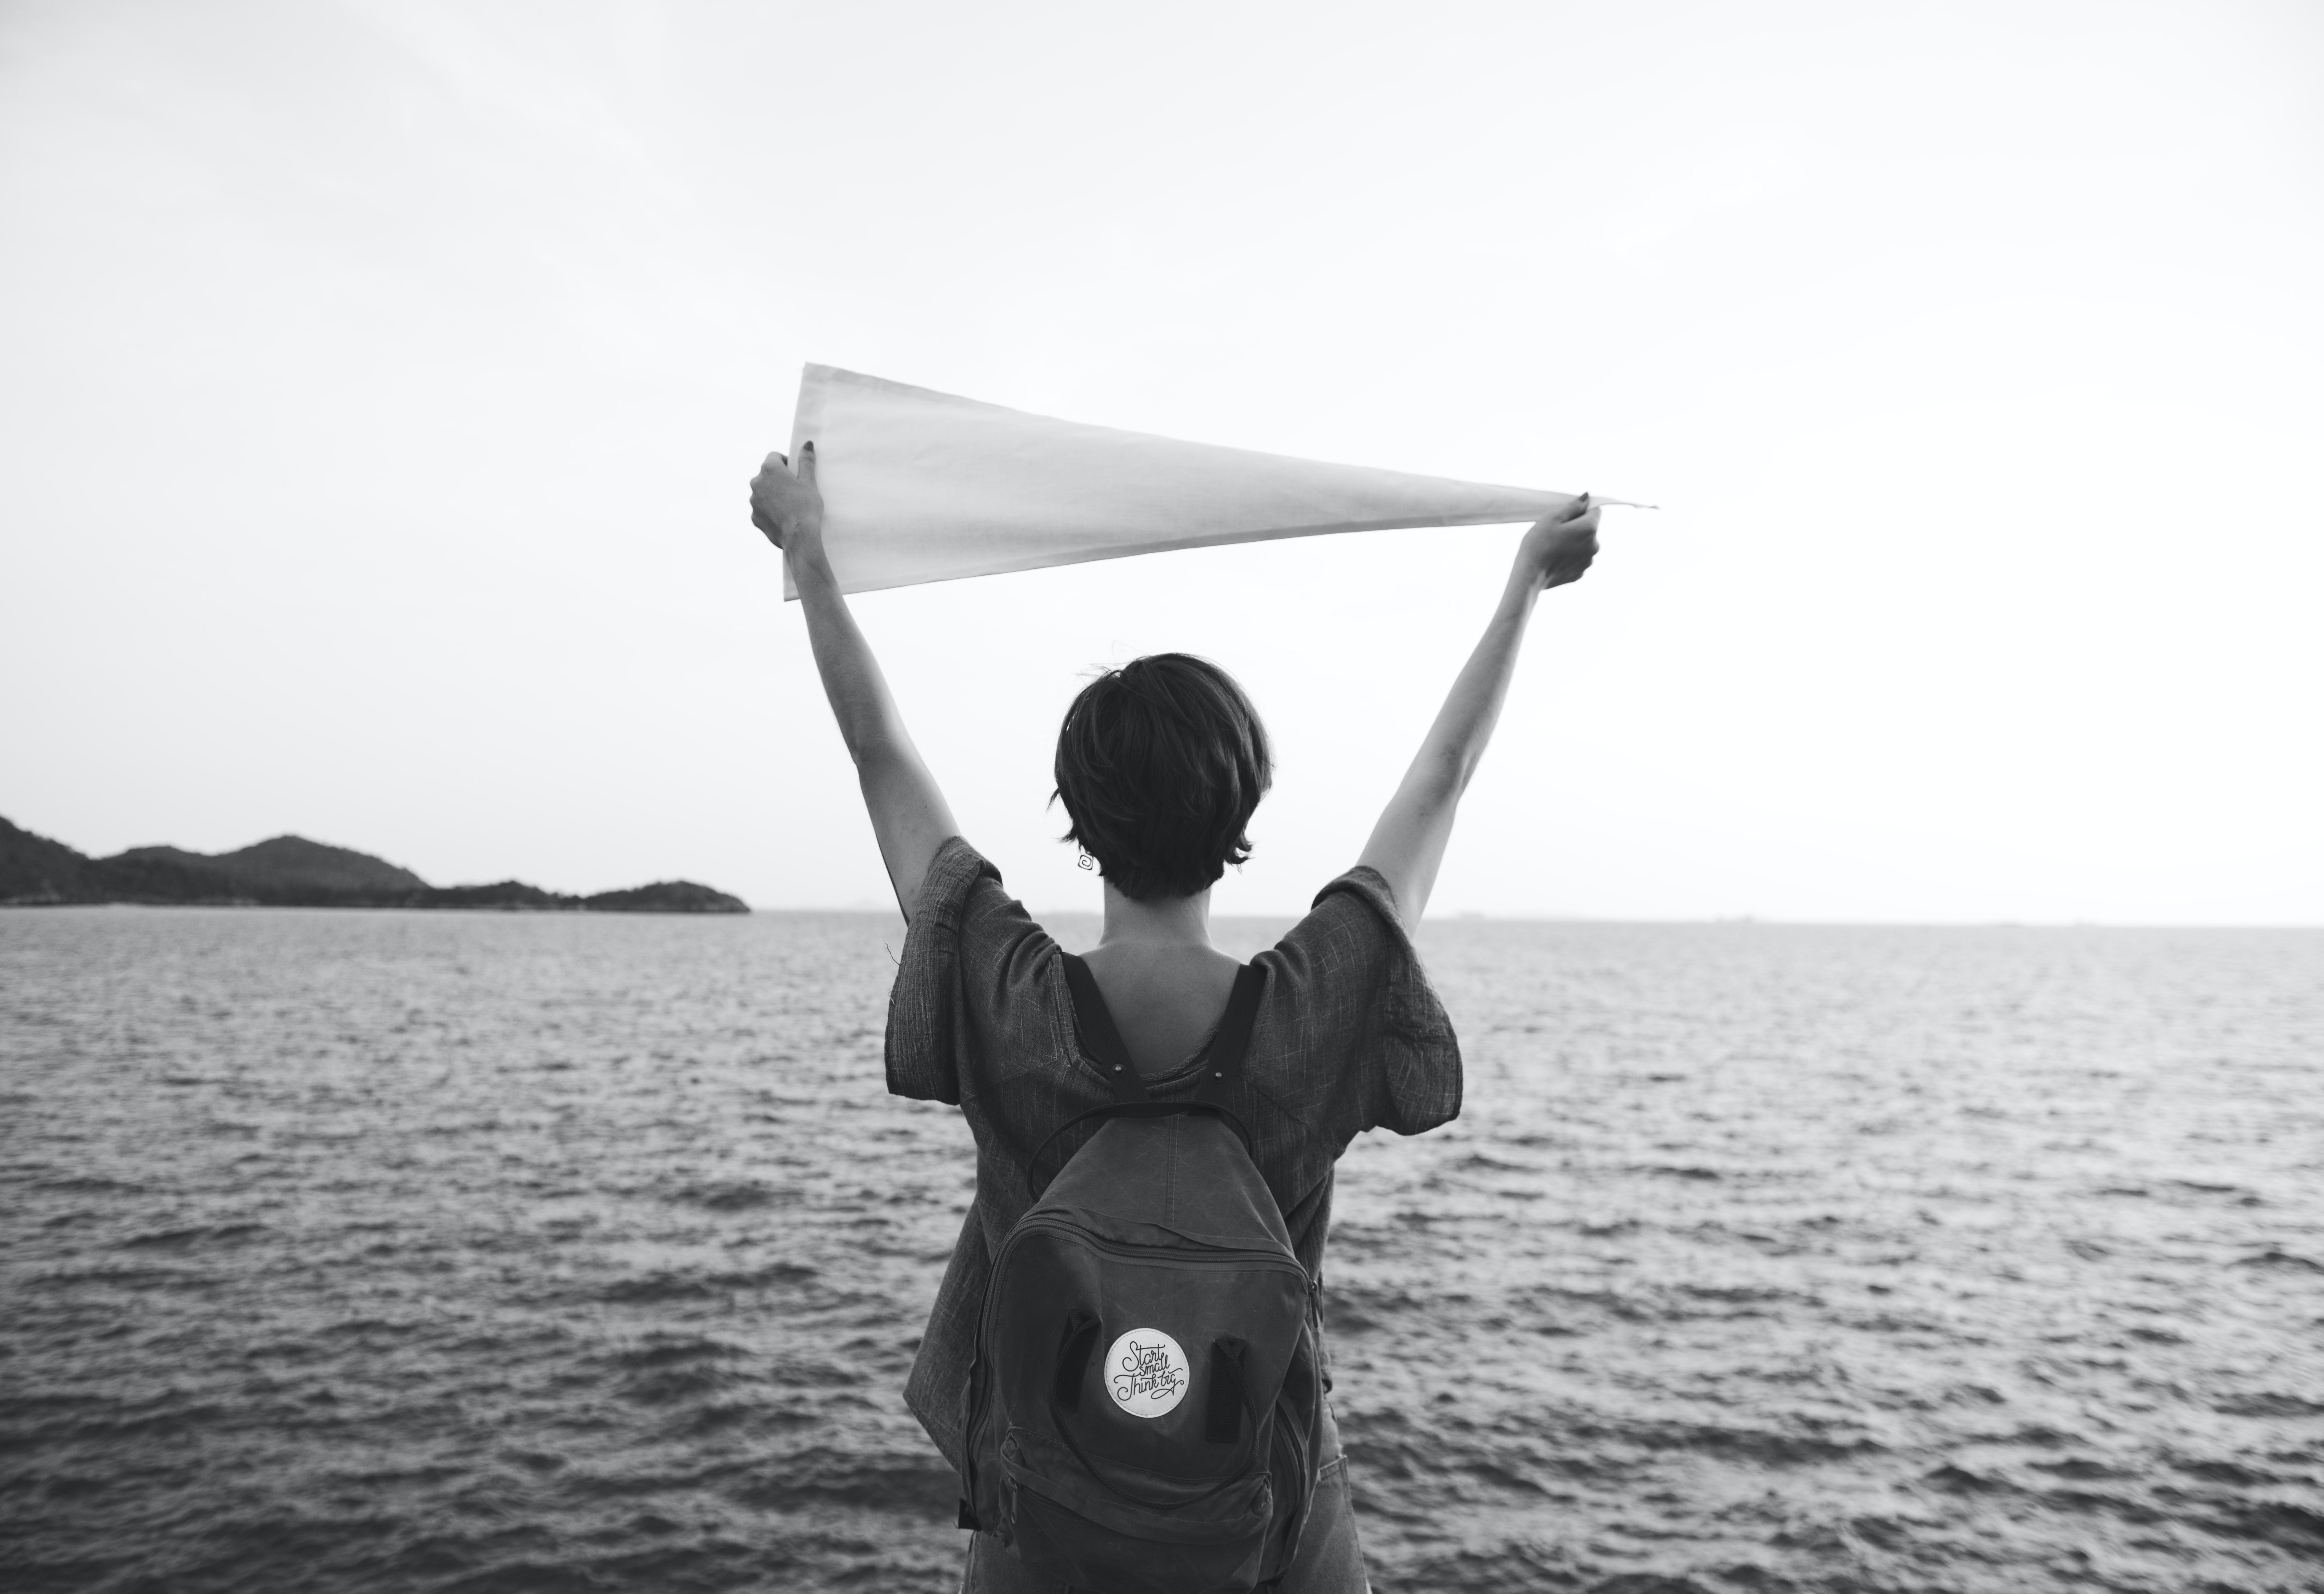 person raising hands while holding flag facing body of water